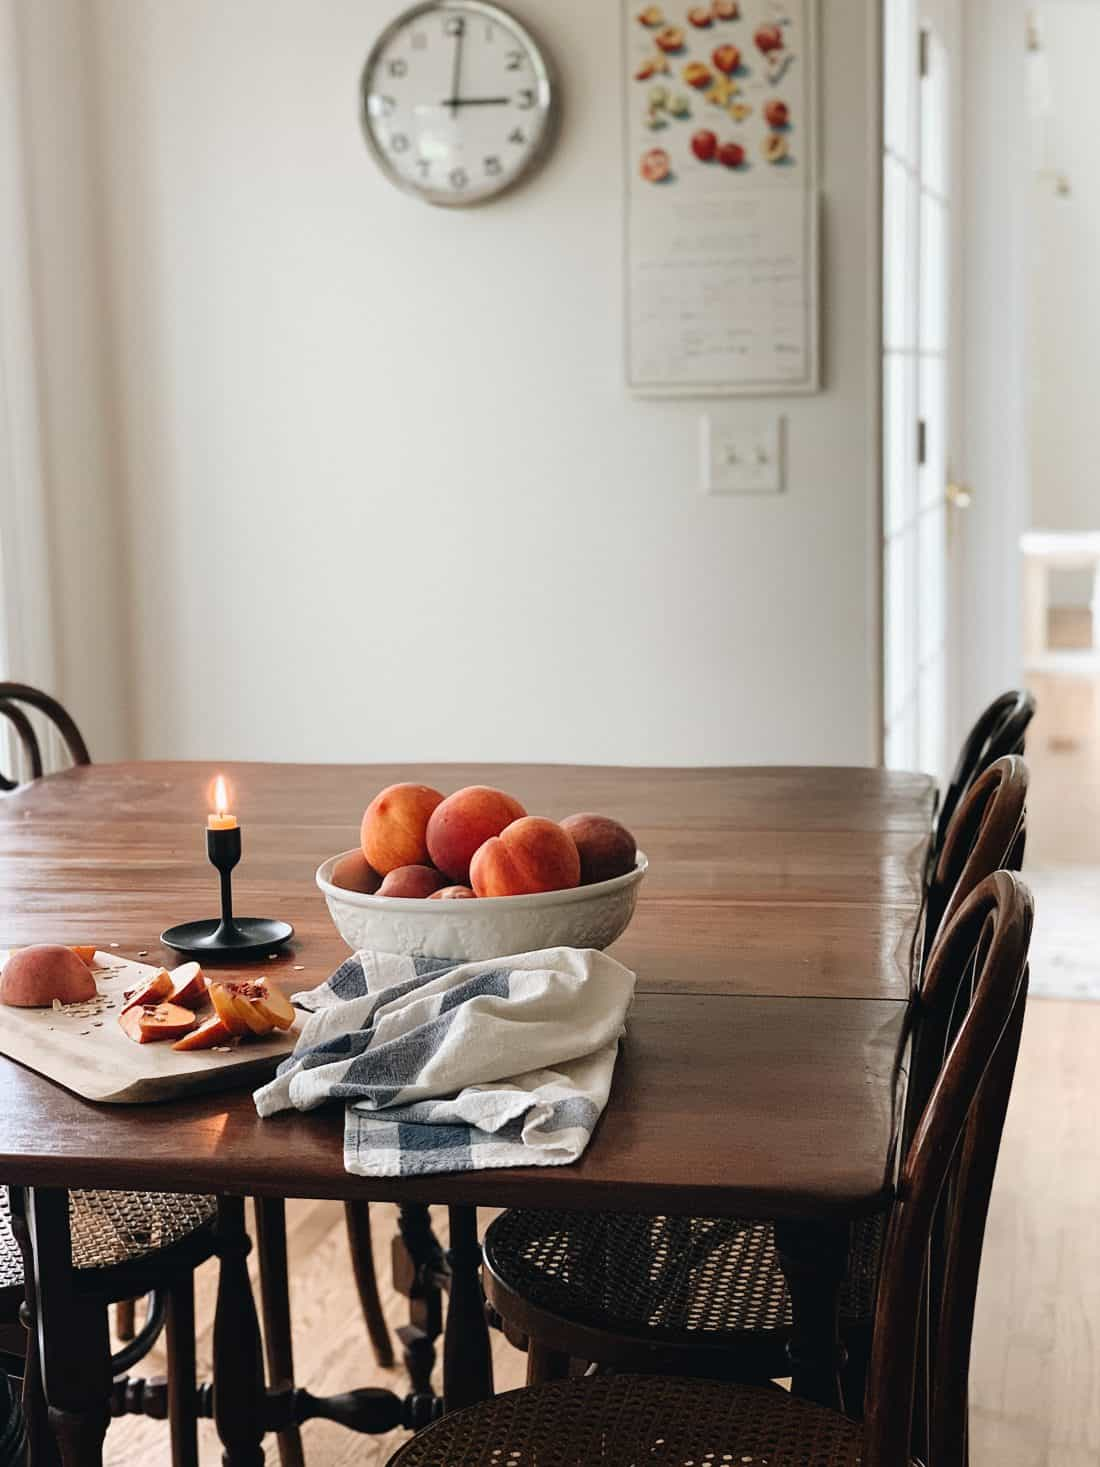 why to decorate with antique wooden table and bentwood chairs with peaches on top in a white bowl